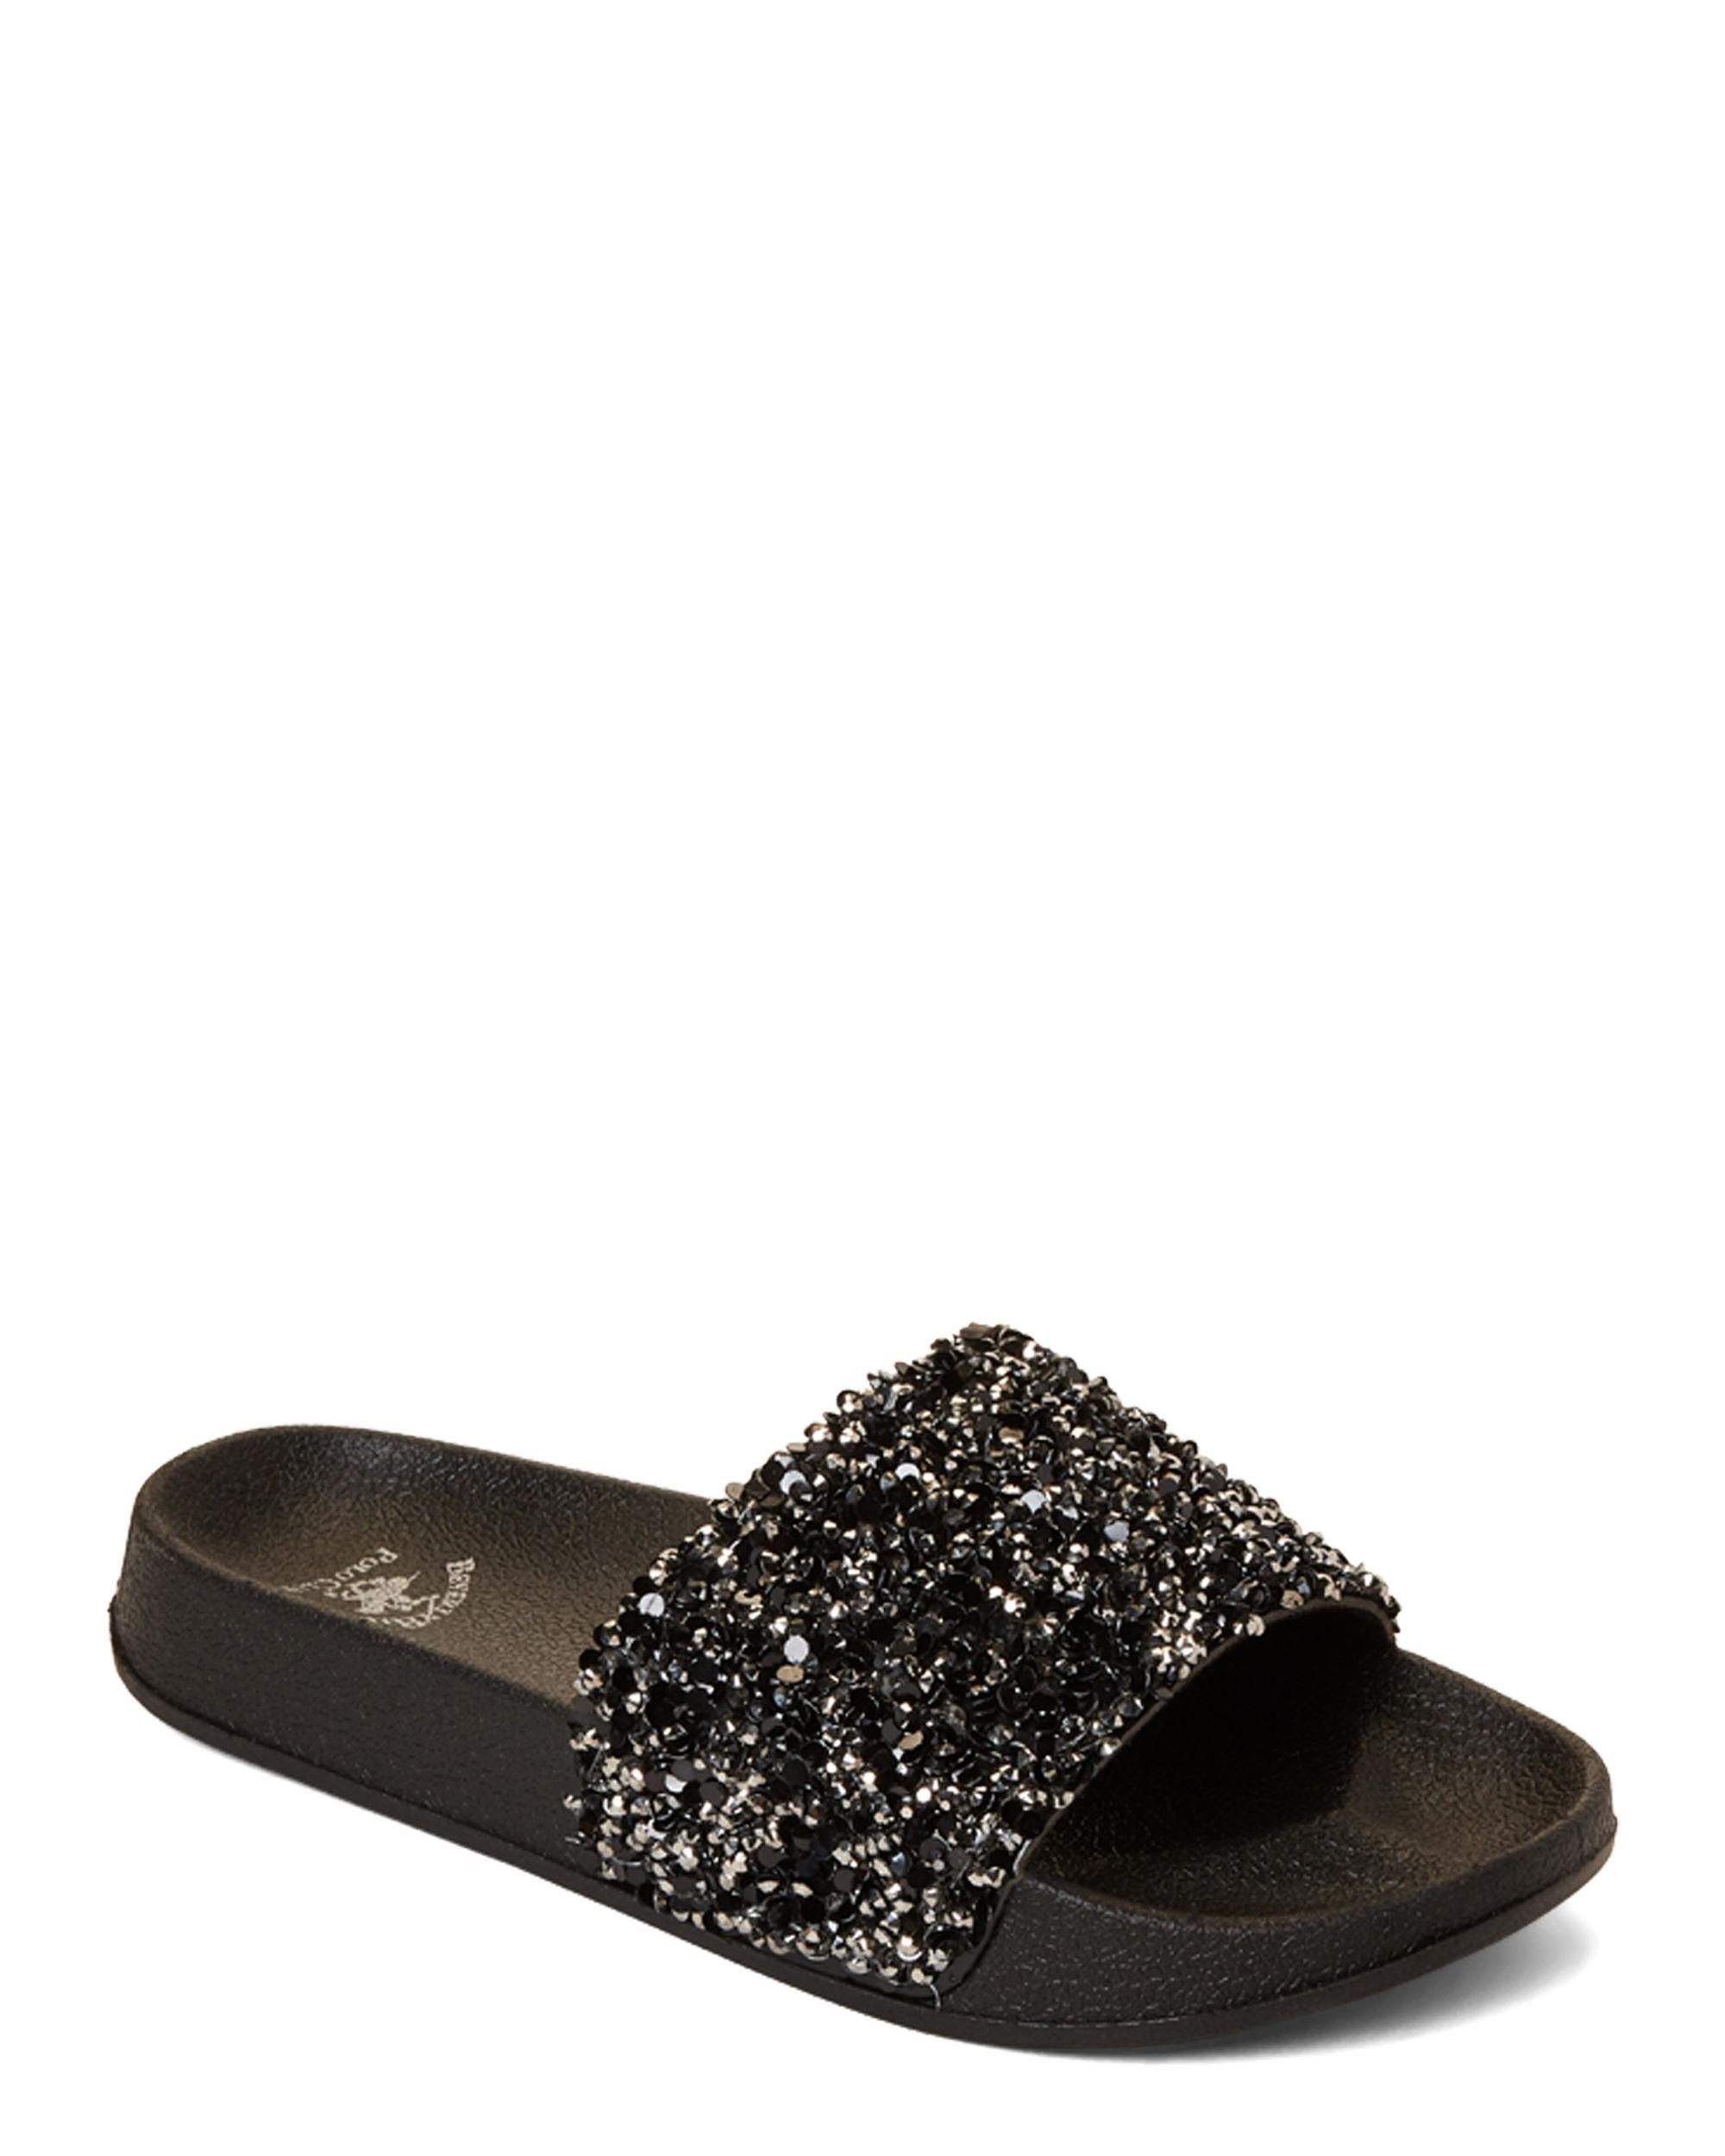 937873b09 Lyst - Beverly Hills Polo Club Rock Candy Slide Sandals in Black